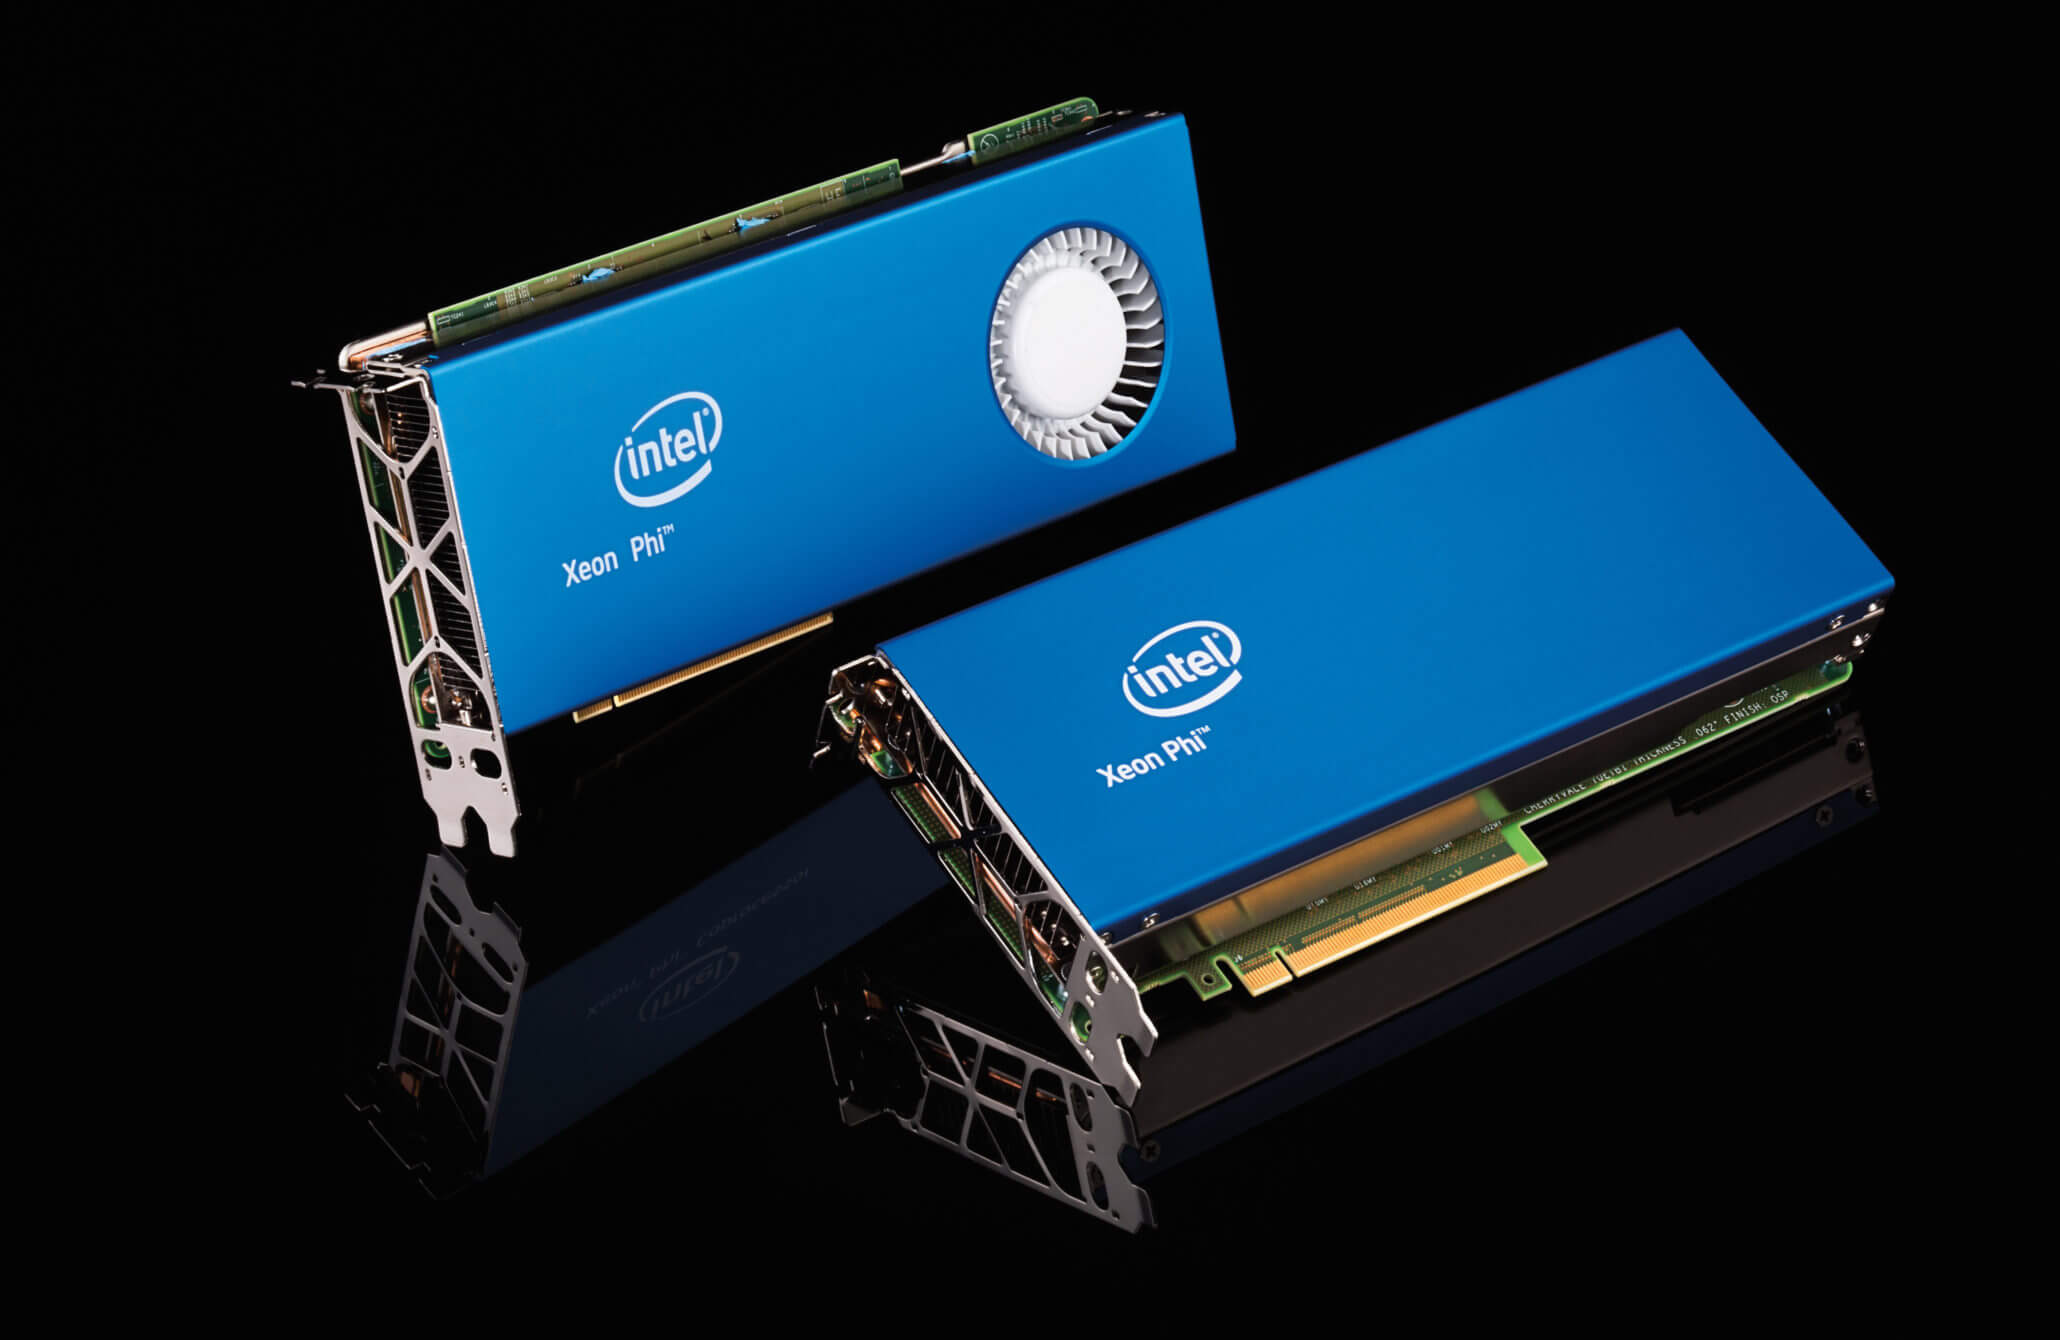 Showing Intel is getting serious about graphics, company rehires 'Larrabee' GPU architect